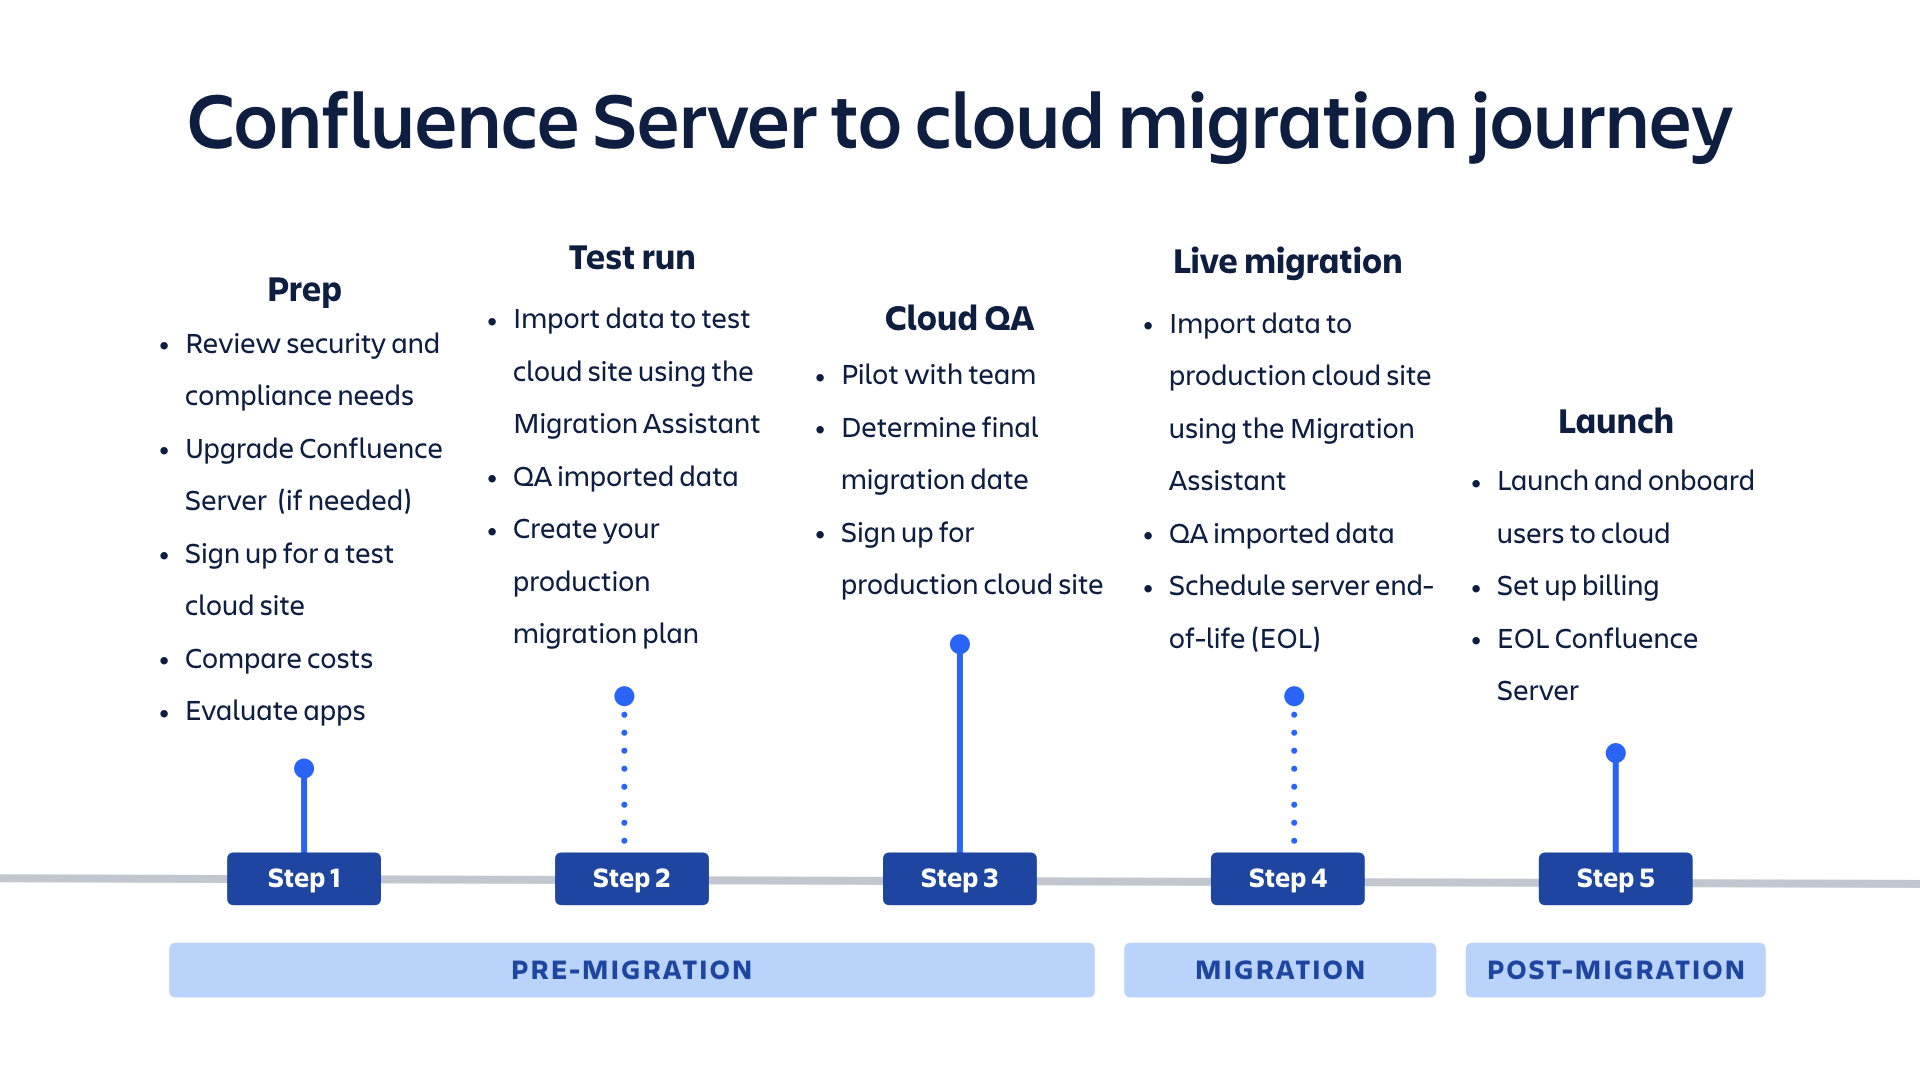 Confluence Server to cloud migration journey diagram